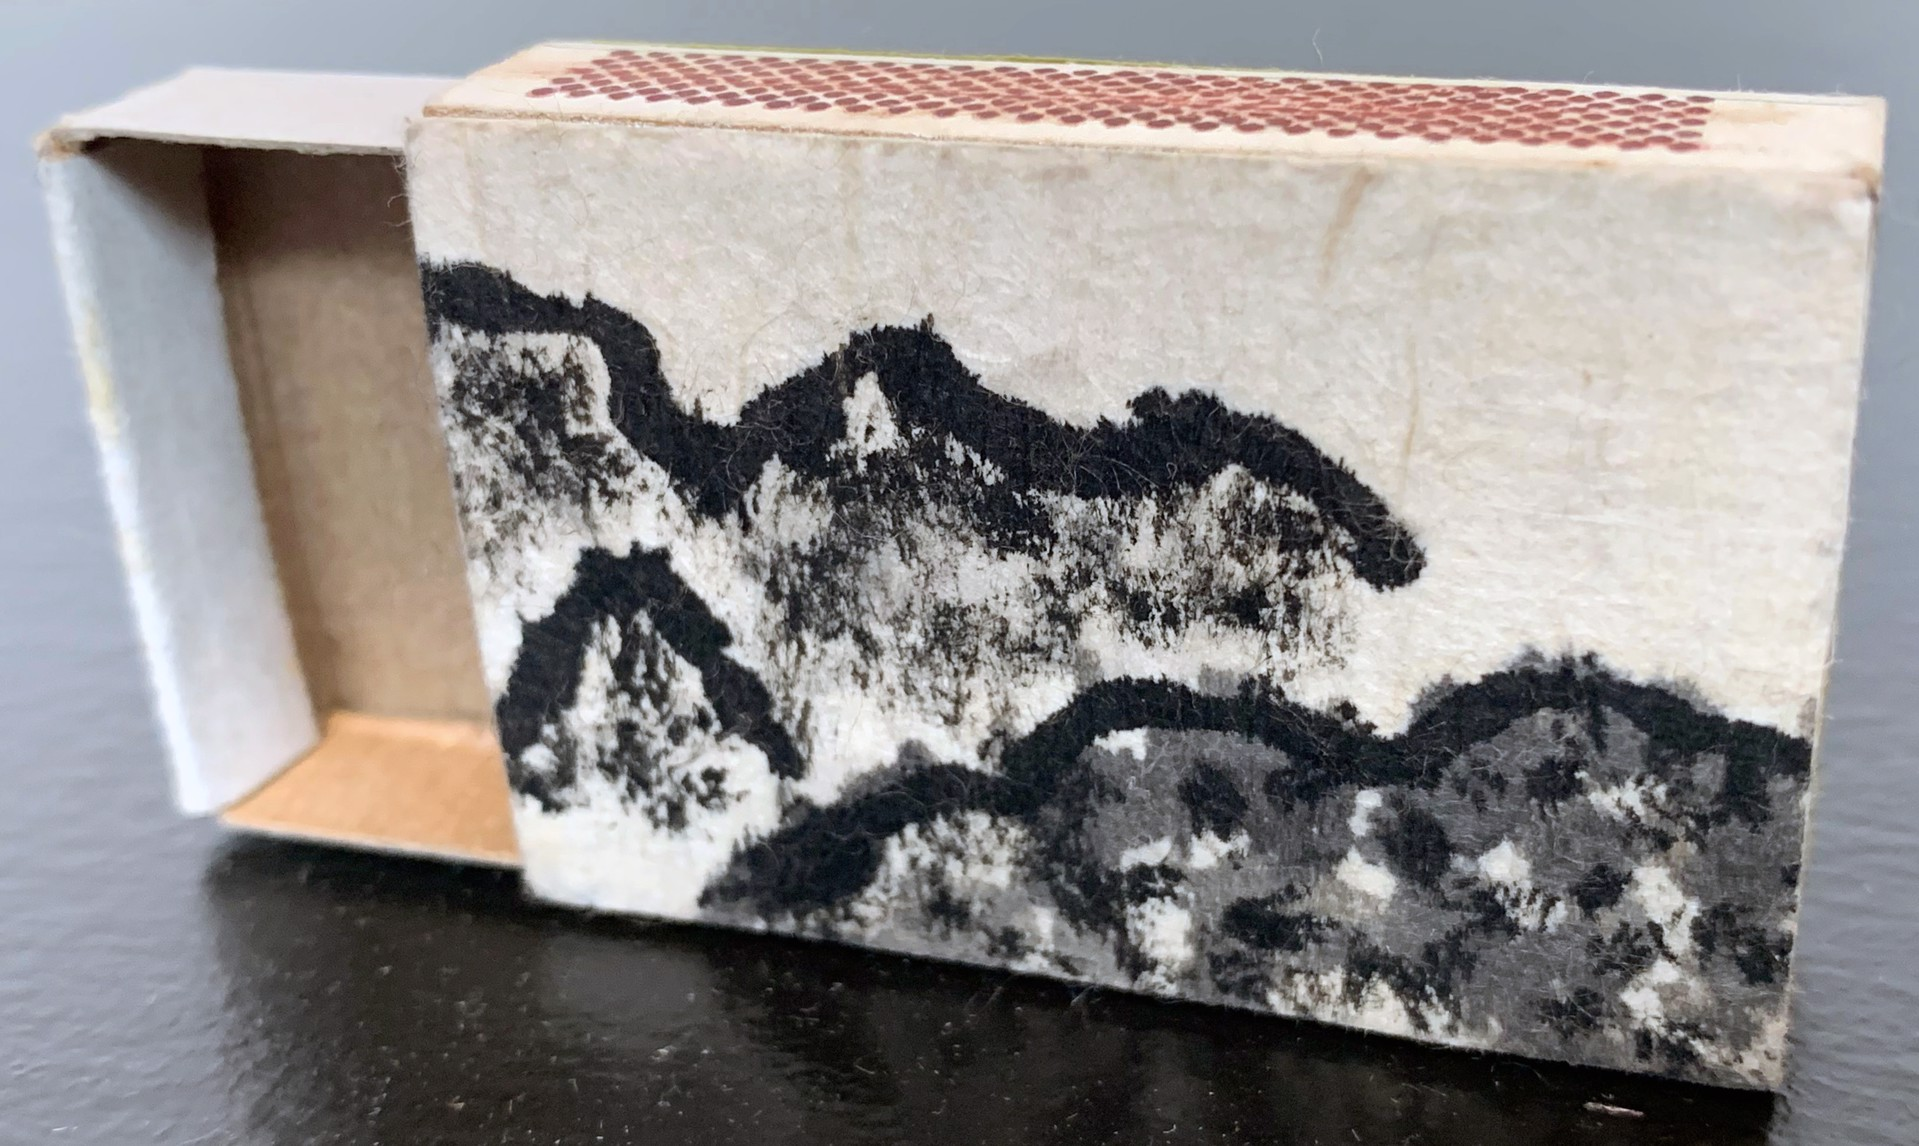 Mountain Visions matchbox 12 by Donald Cole